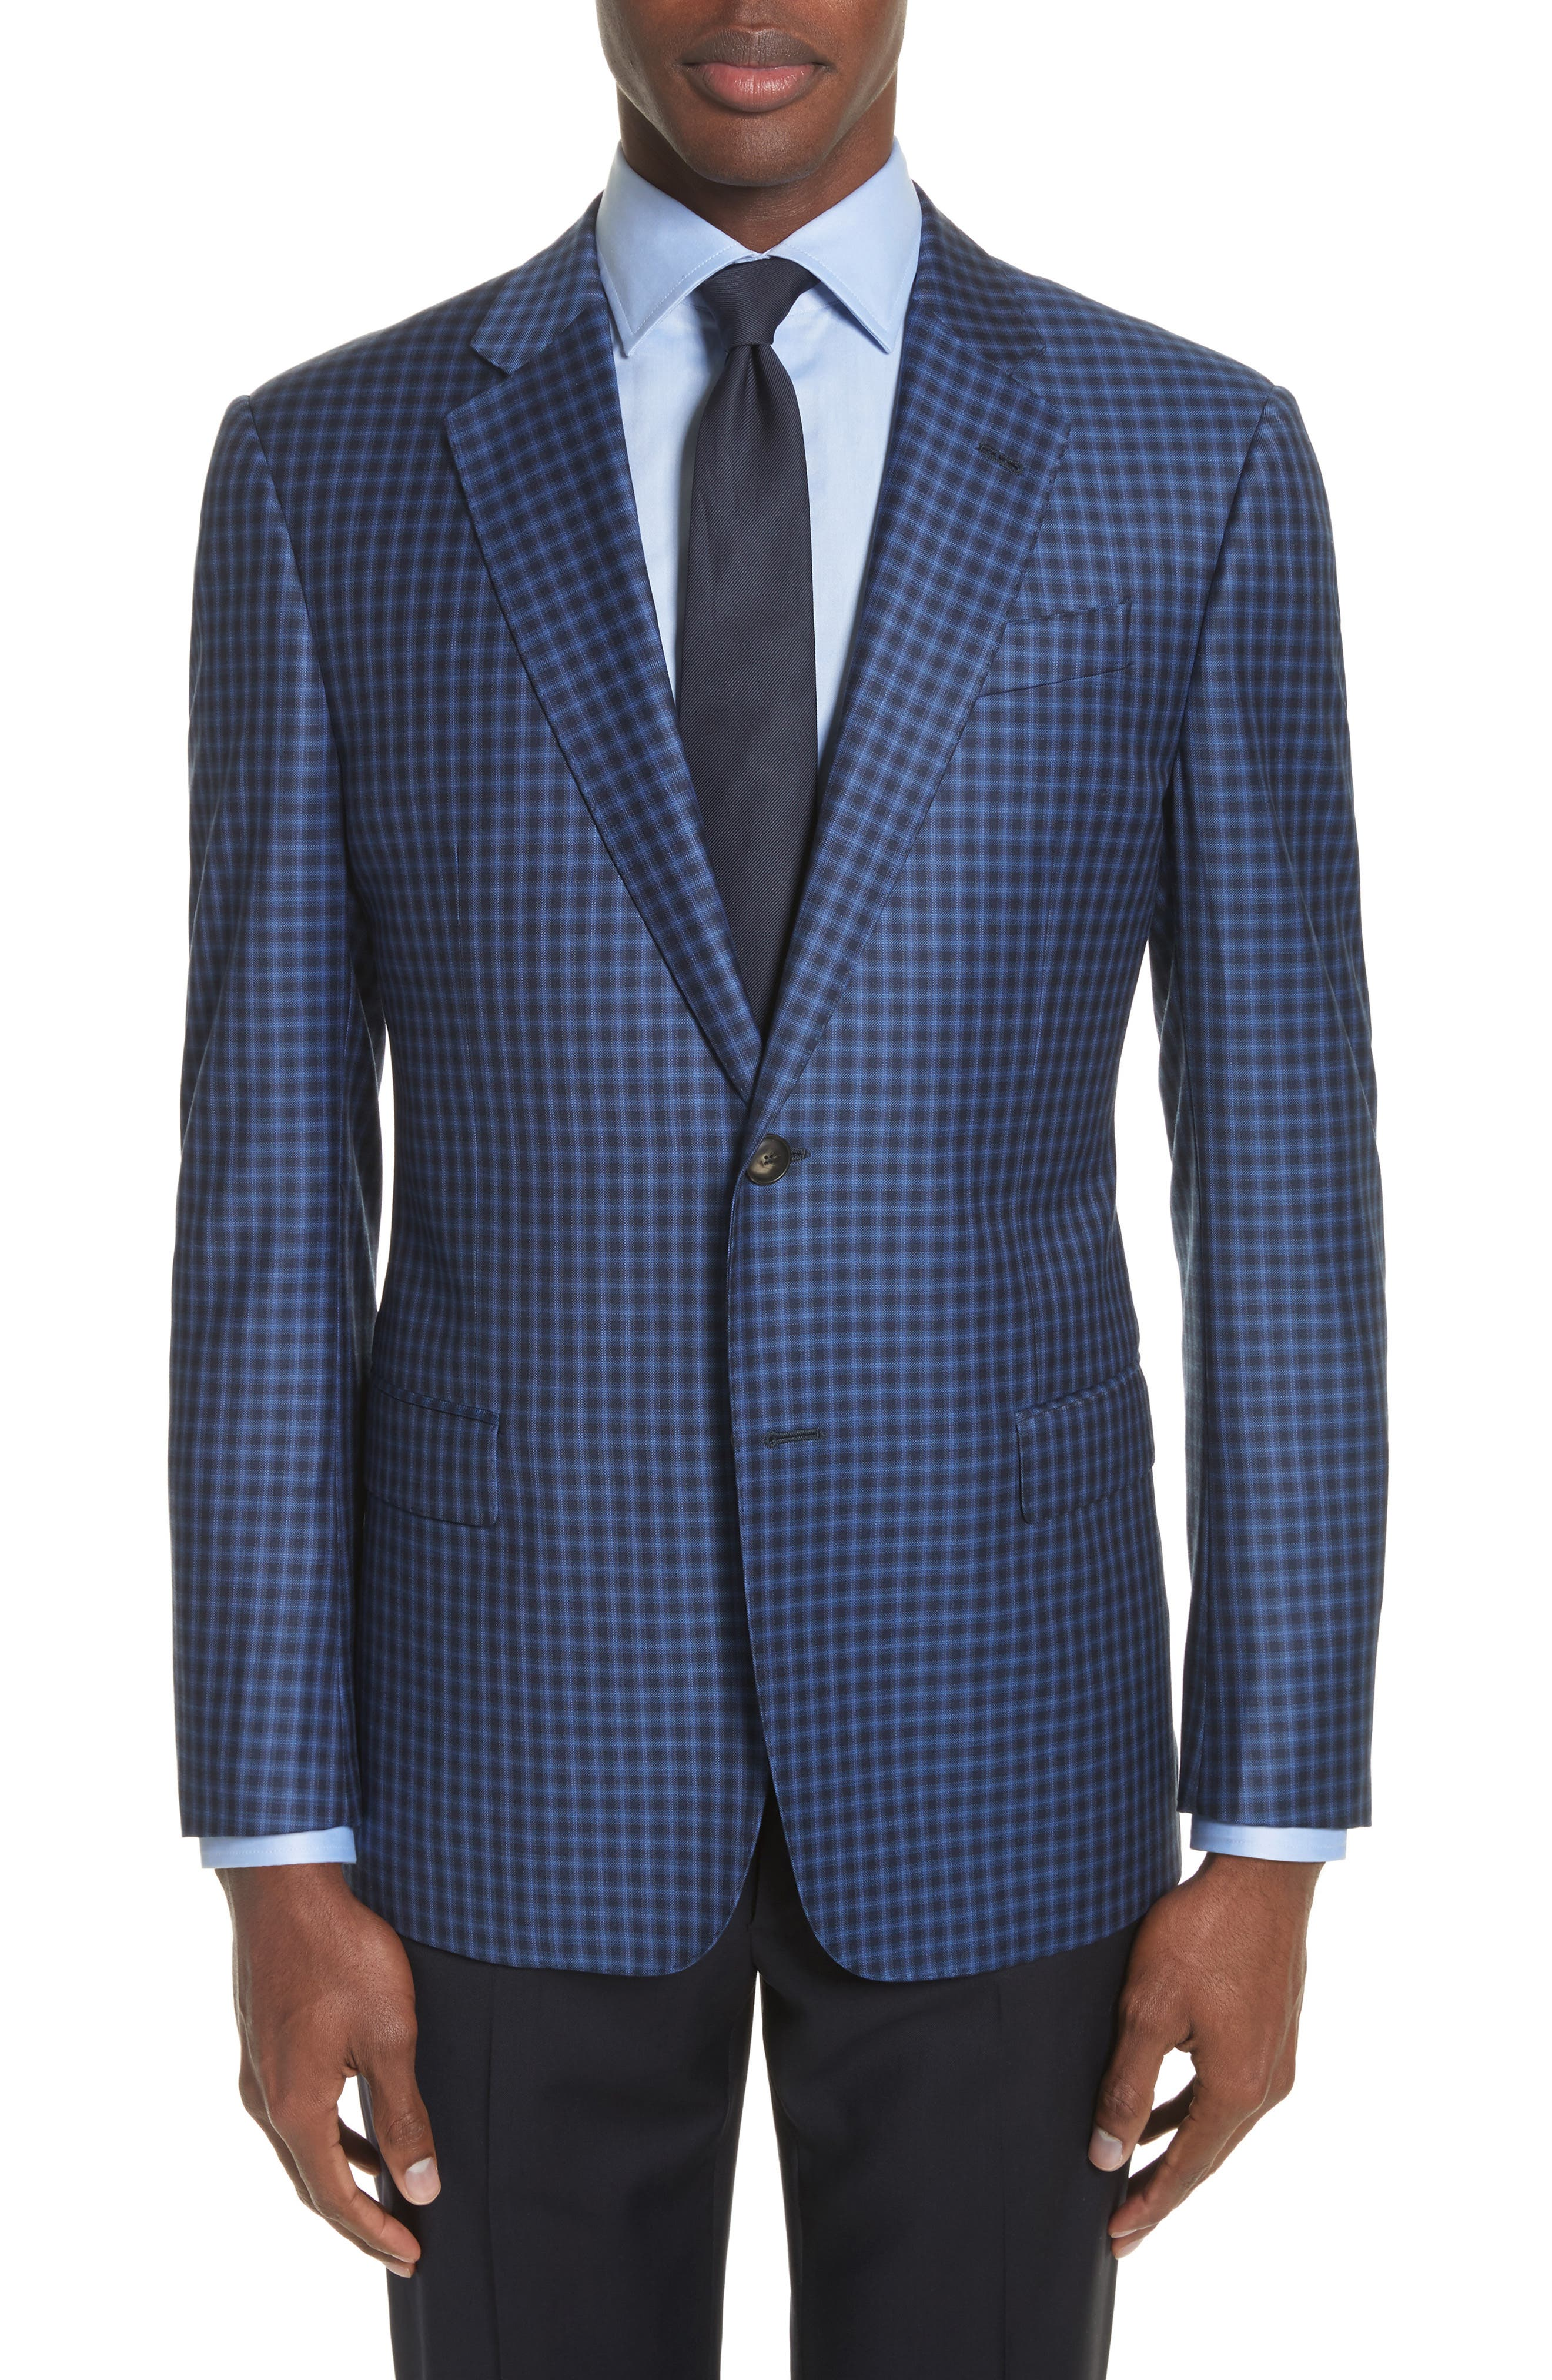 Main Image - Emporio Armani G Line Trim Fit Check Wool Sport Coat